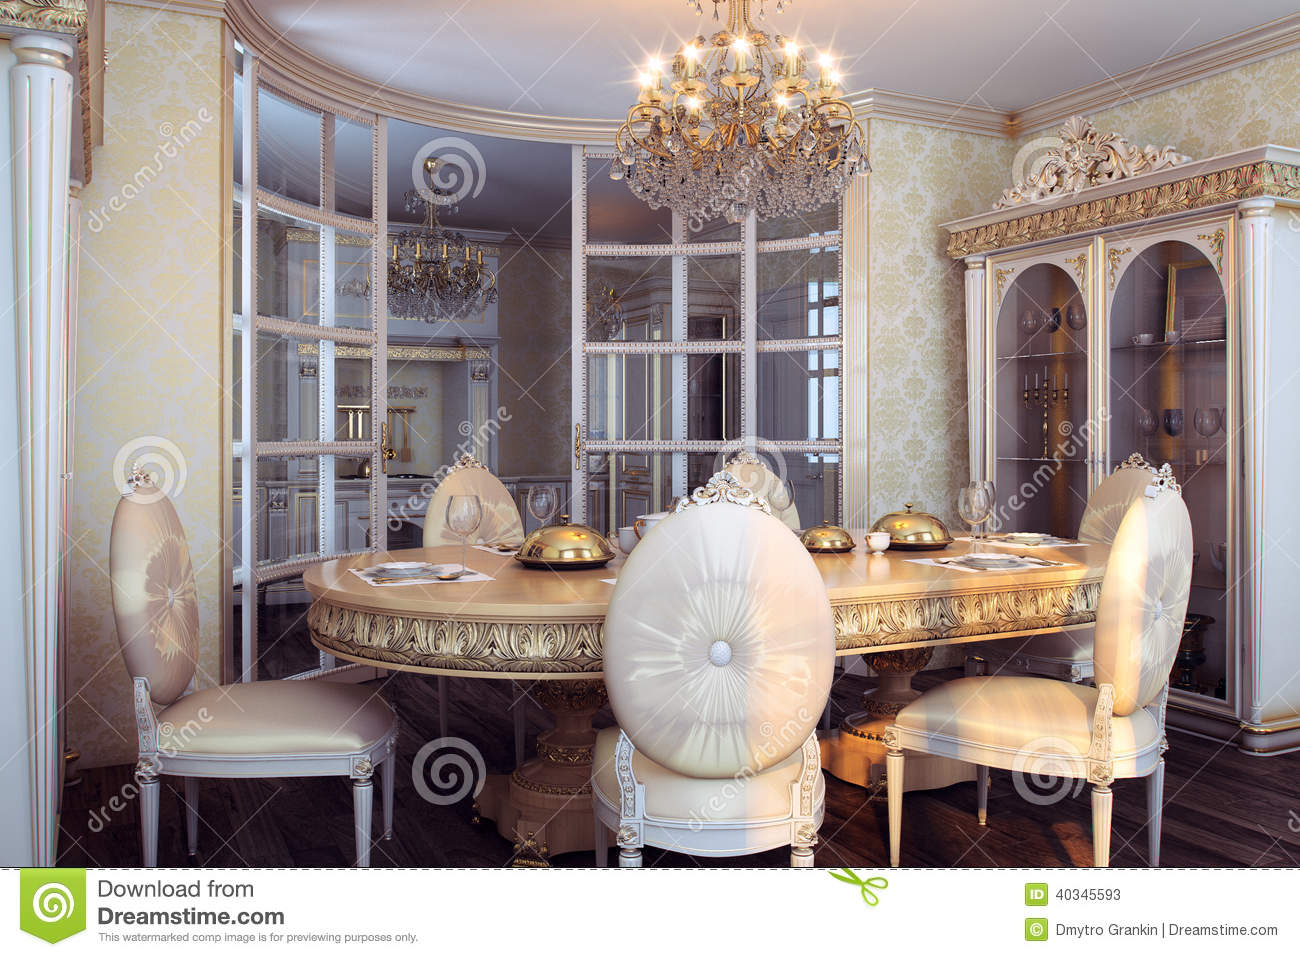 Meubles royaux dans l 39 int rieur baroque de luxe photo for Interieur baroque